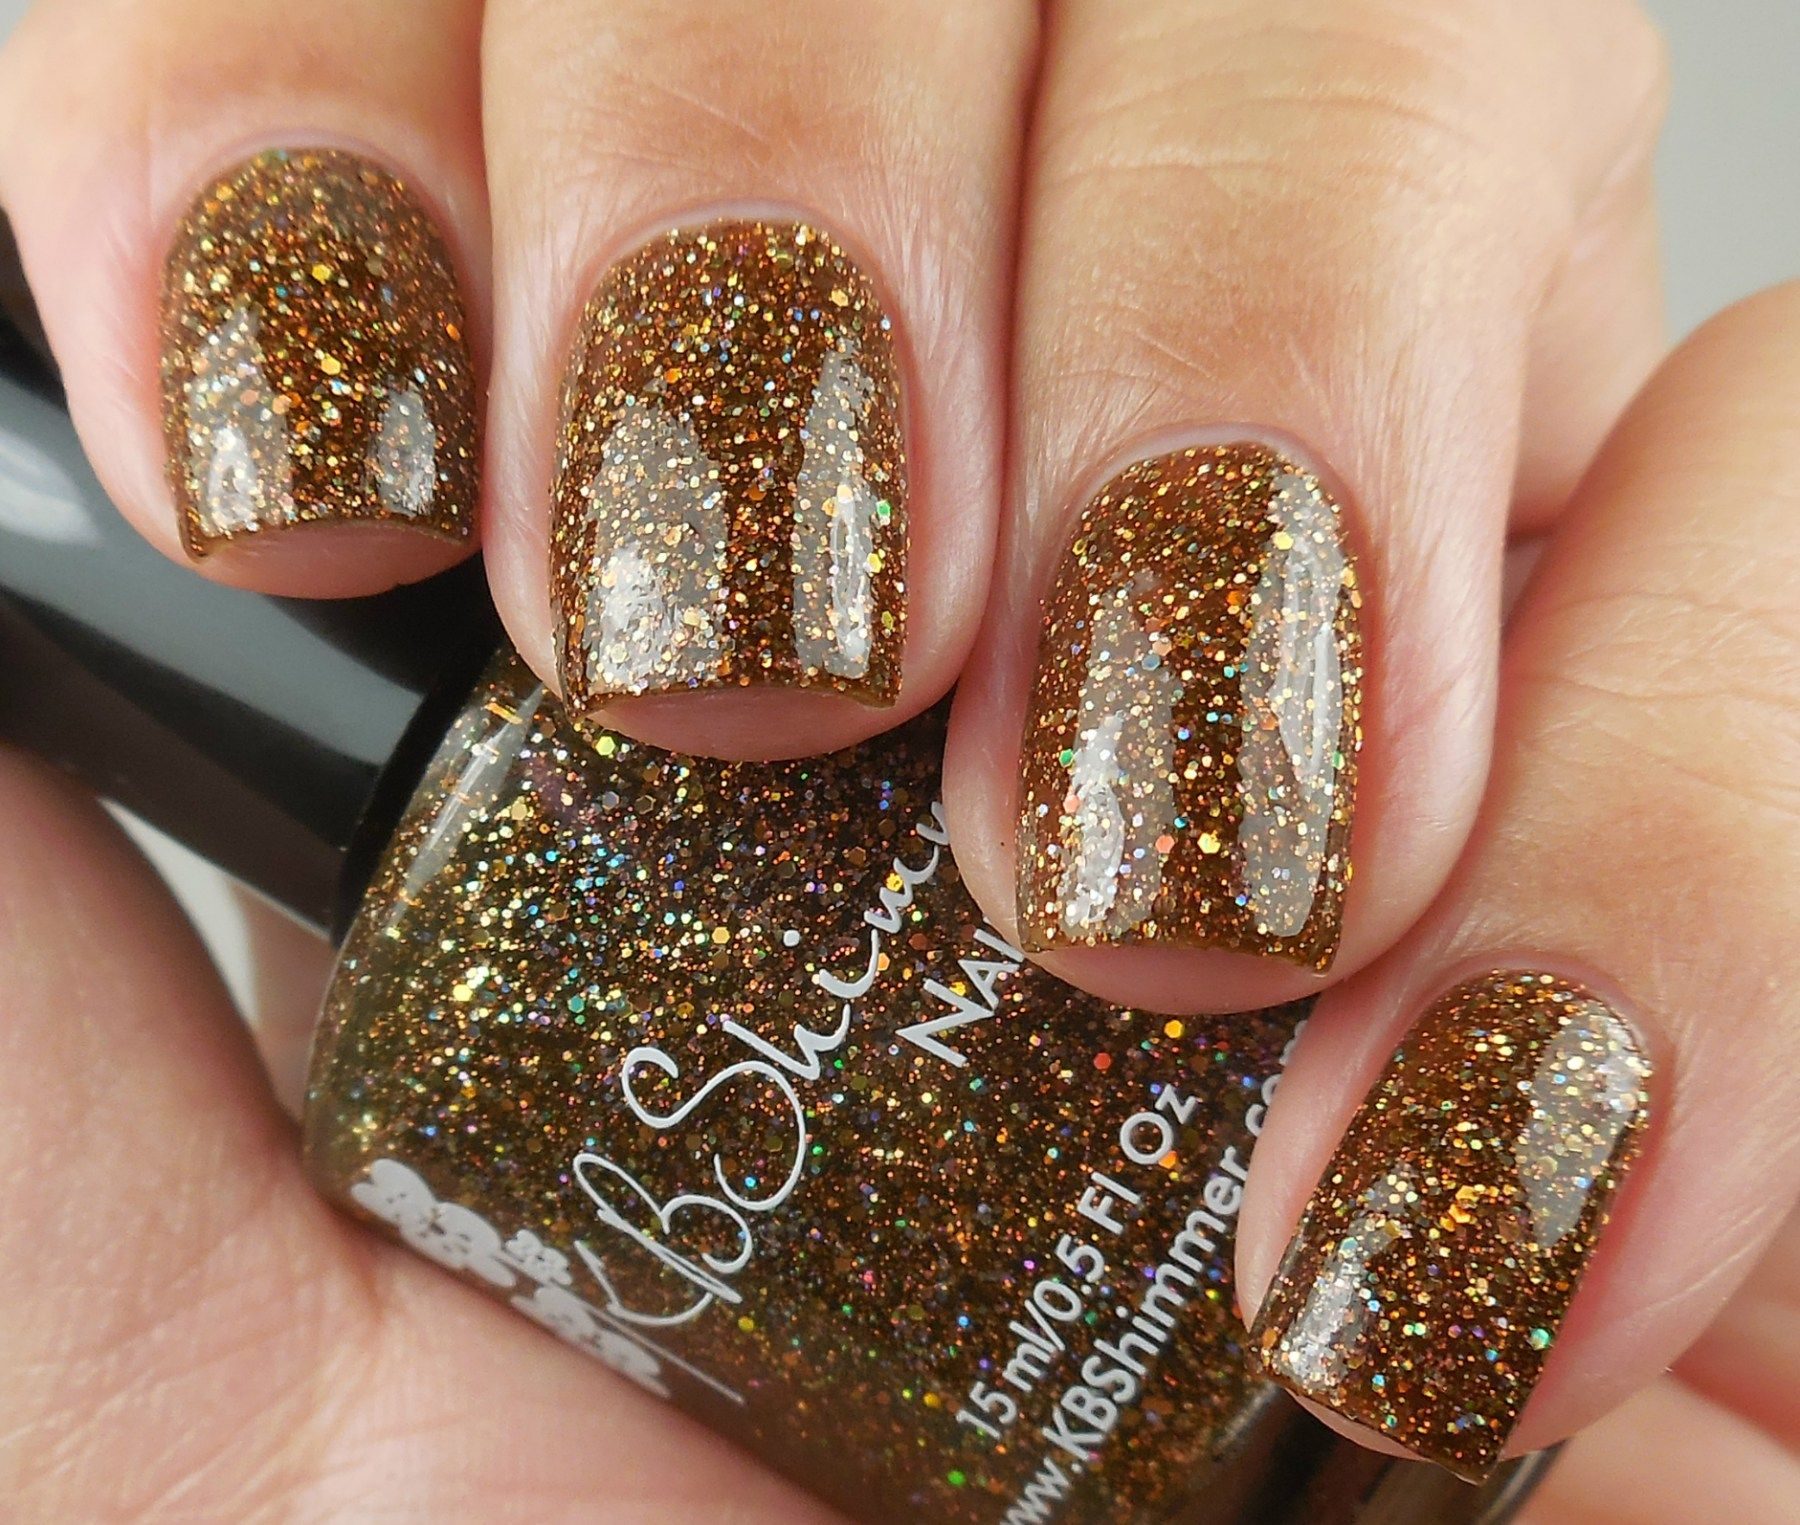 KBShimmer Fall 2017 Collection – Blogger Collaboration | Pinterest ...